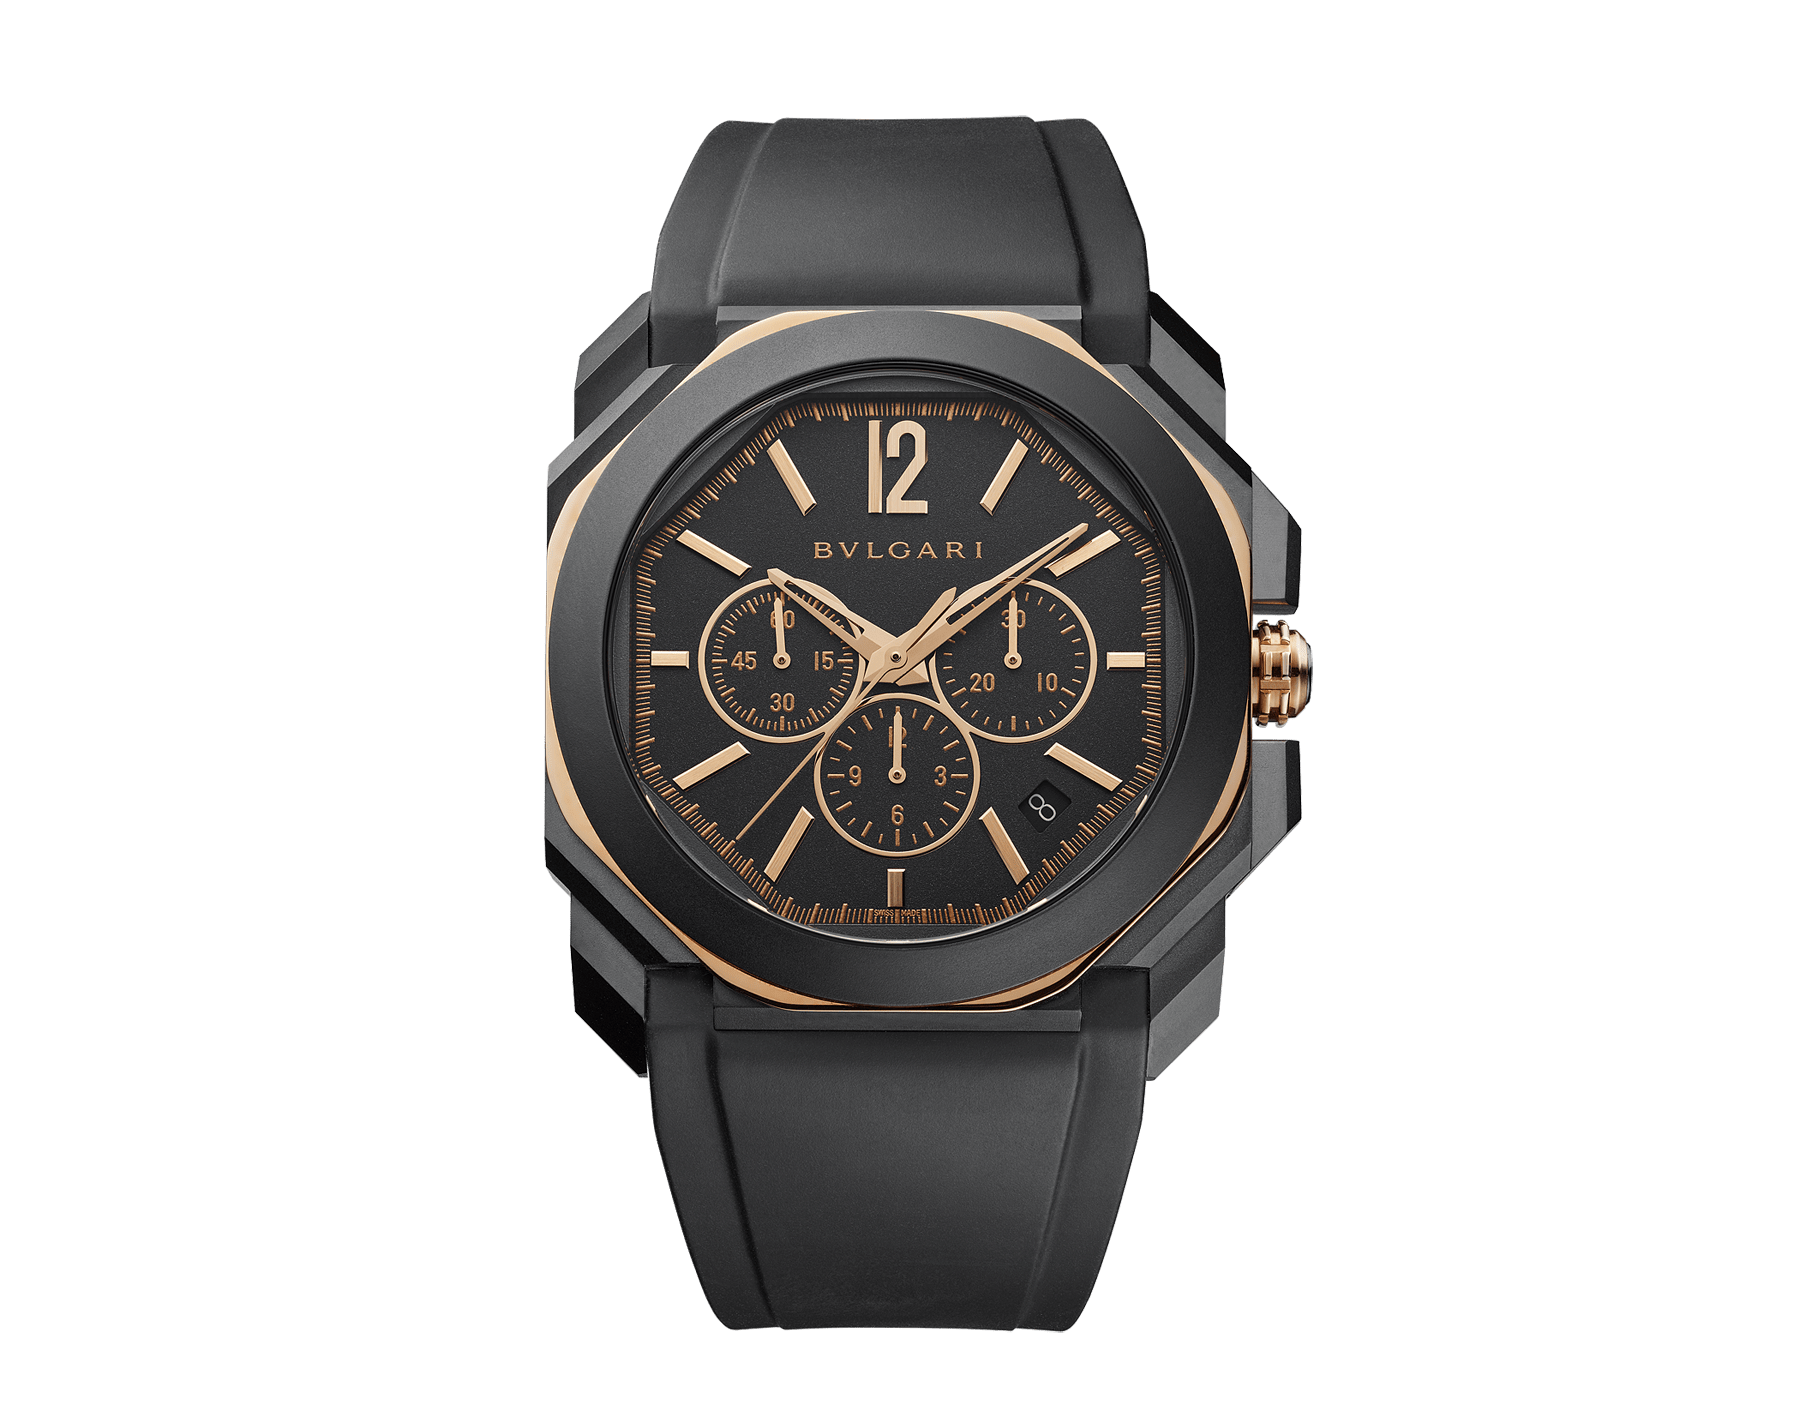 Octo L'Originale watch with mechanical manufacture high-frequency chronograph, silicon escapement, automatic winding and date, sandblasted stainless steel case treated with Diamond Like Carbon, 18 kt rose gold octagon, transparent case back, anthracite dial and black rubber bracelet 103075 image 1